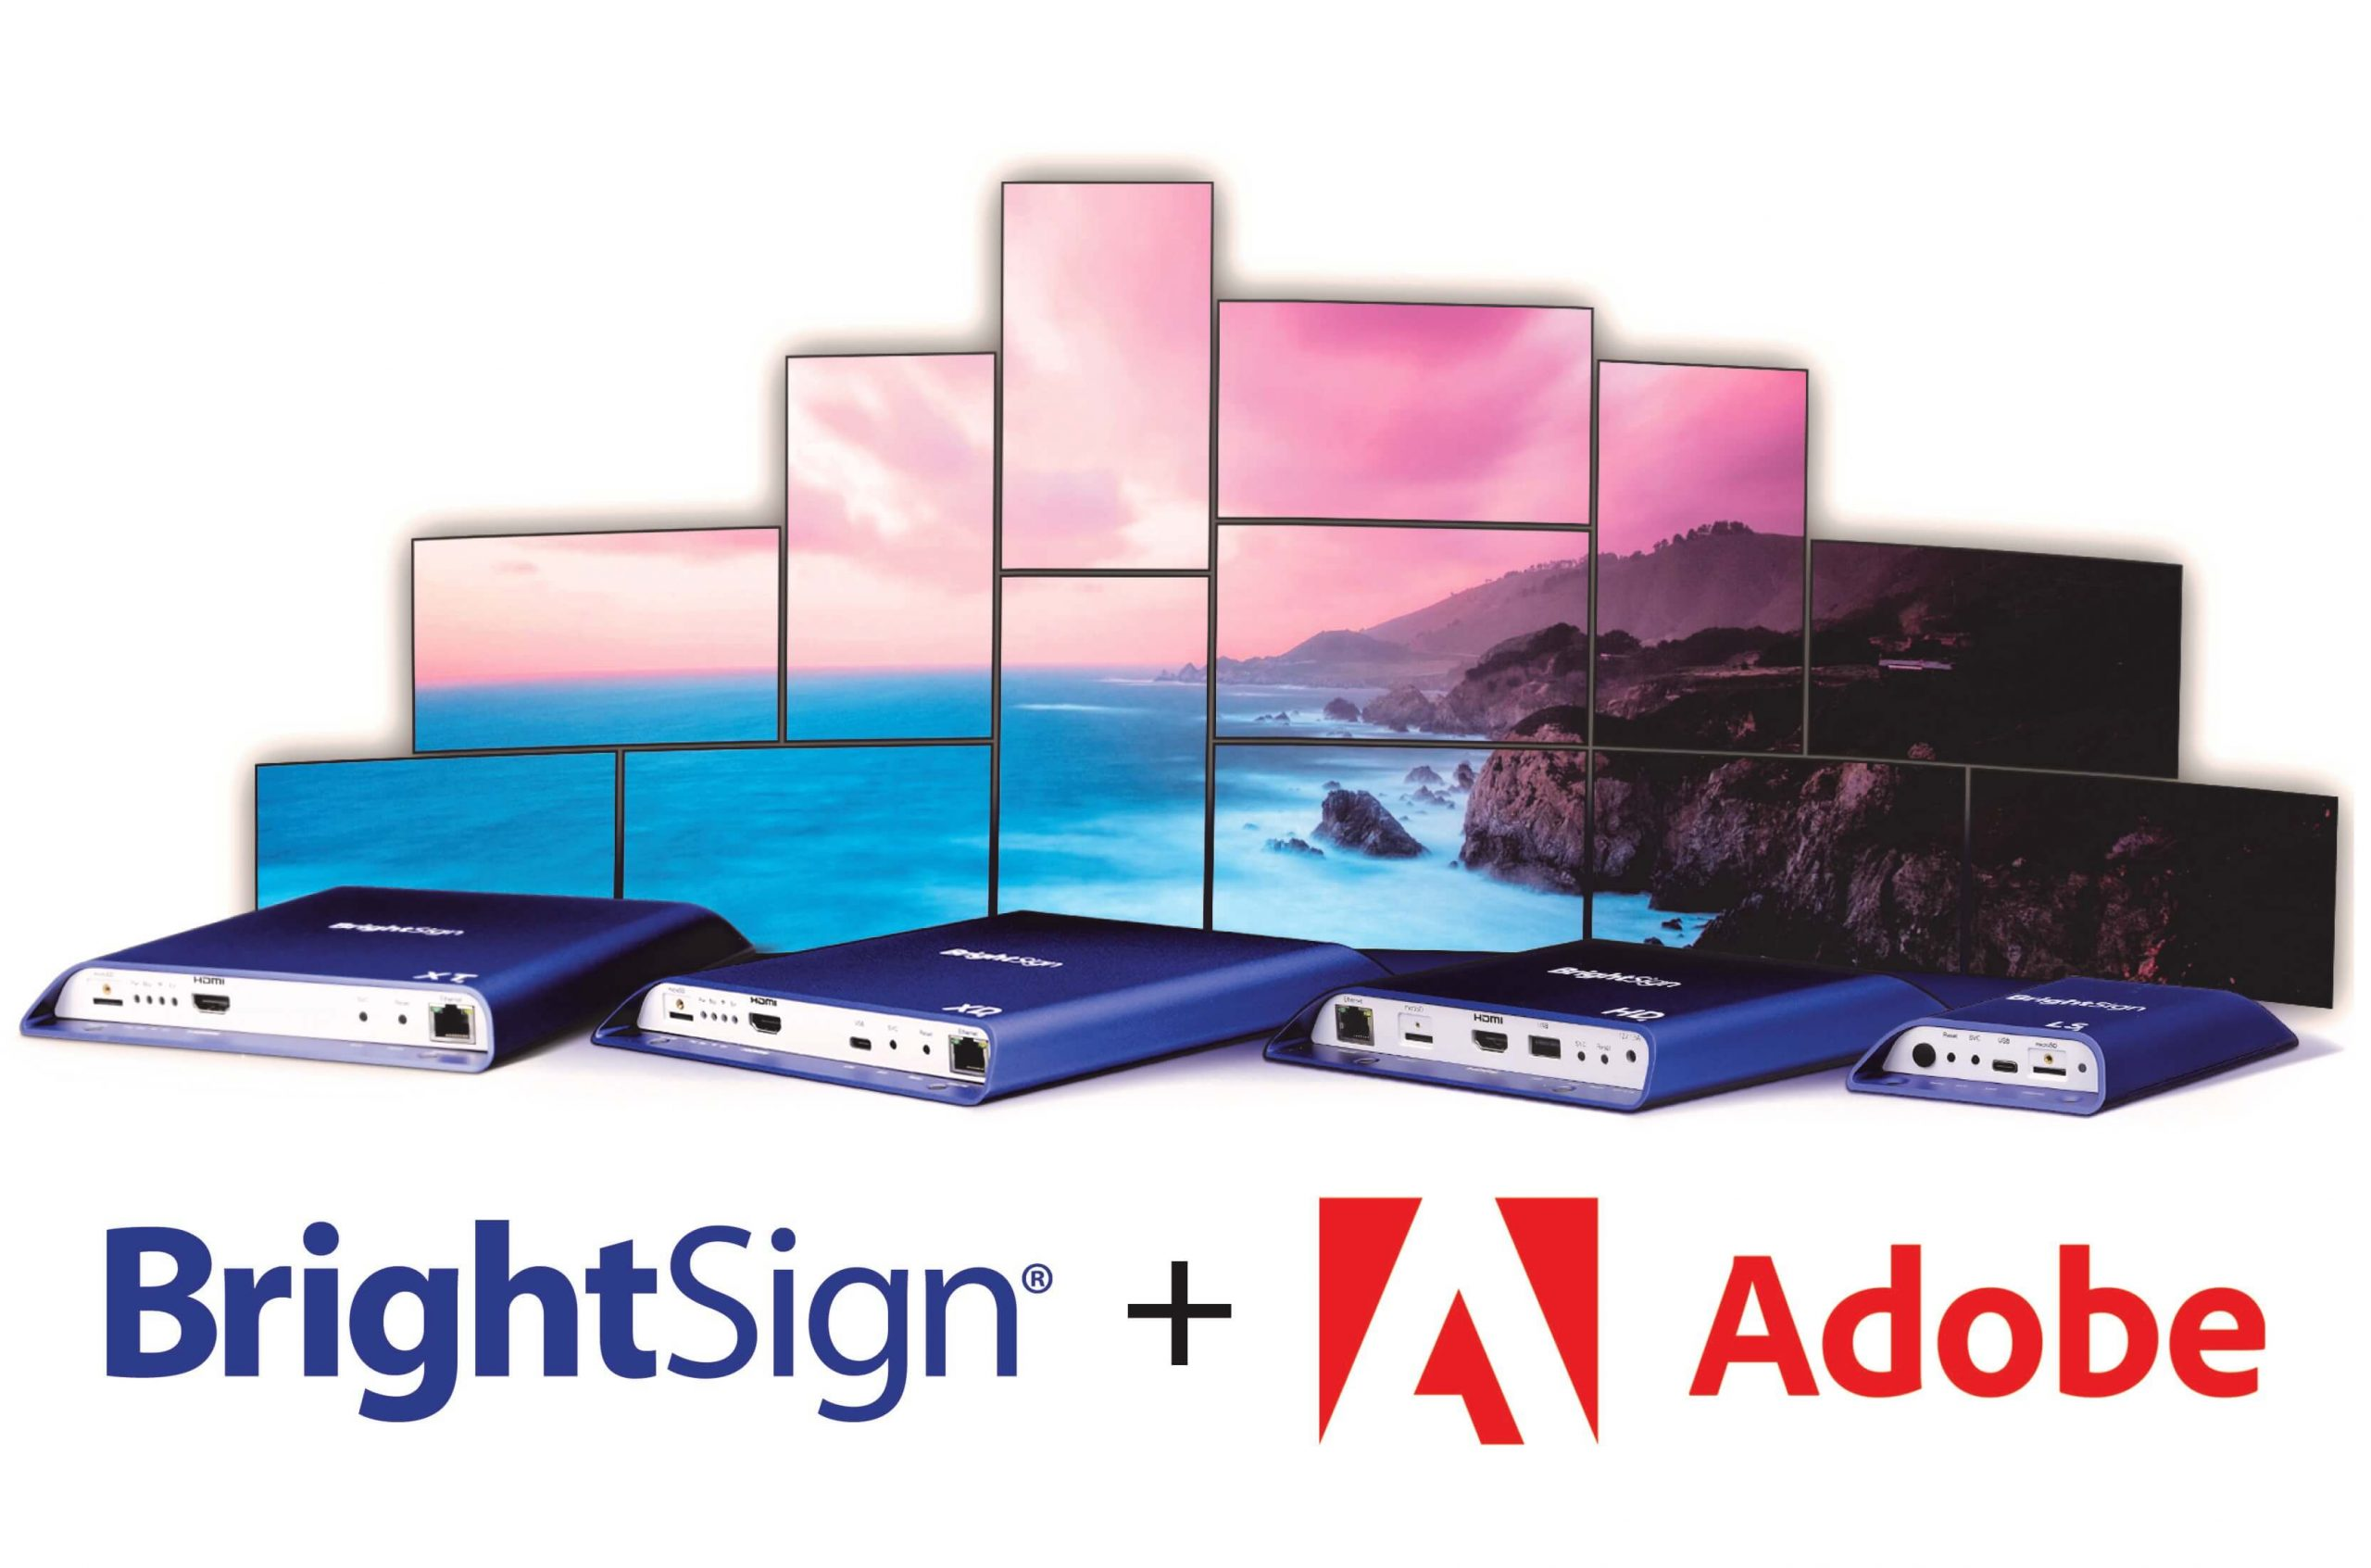 BrightSign upgrades hardware with Adobe Manager Screen compatibility